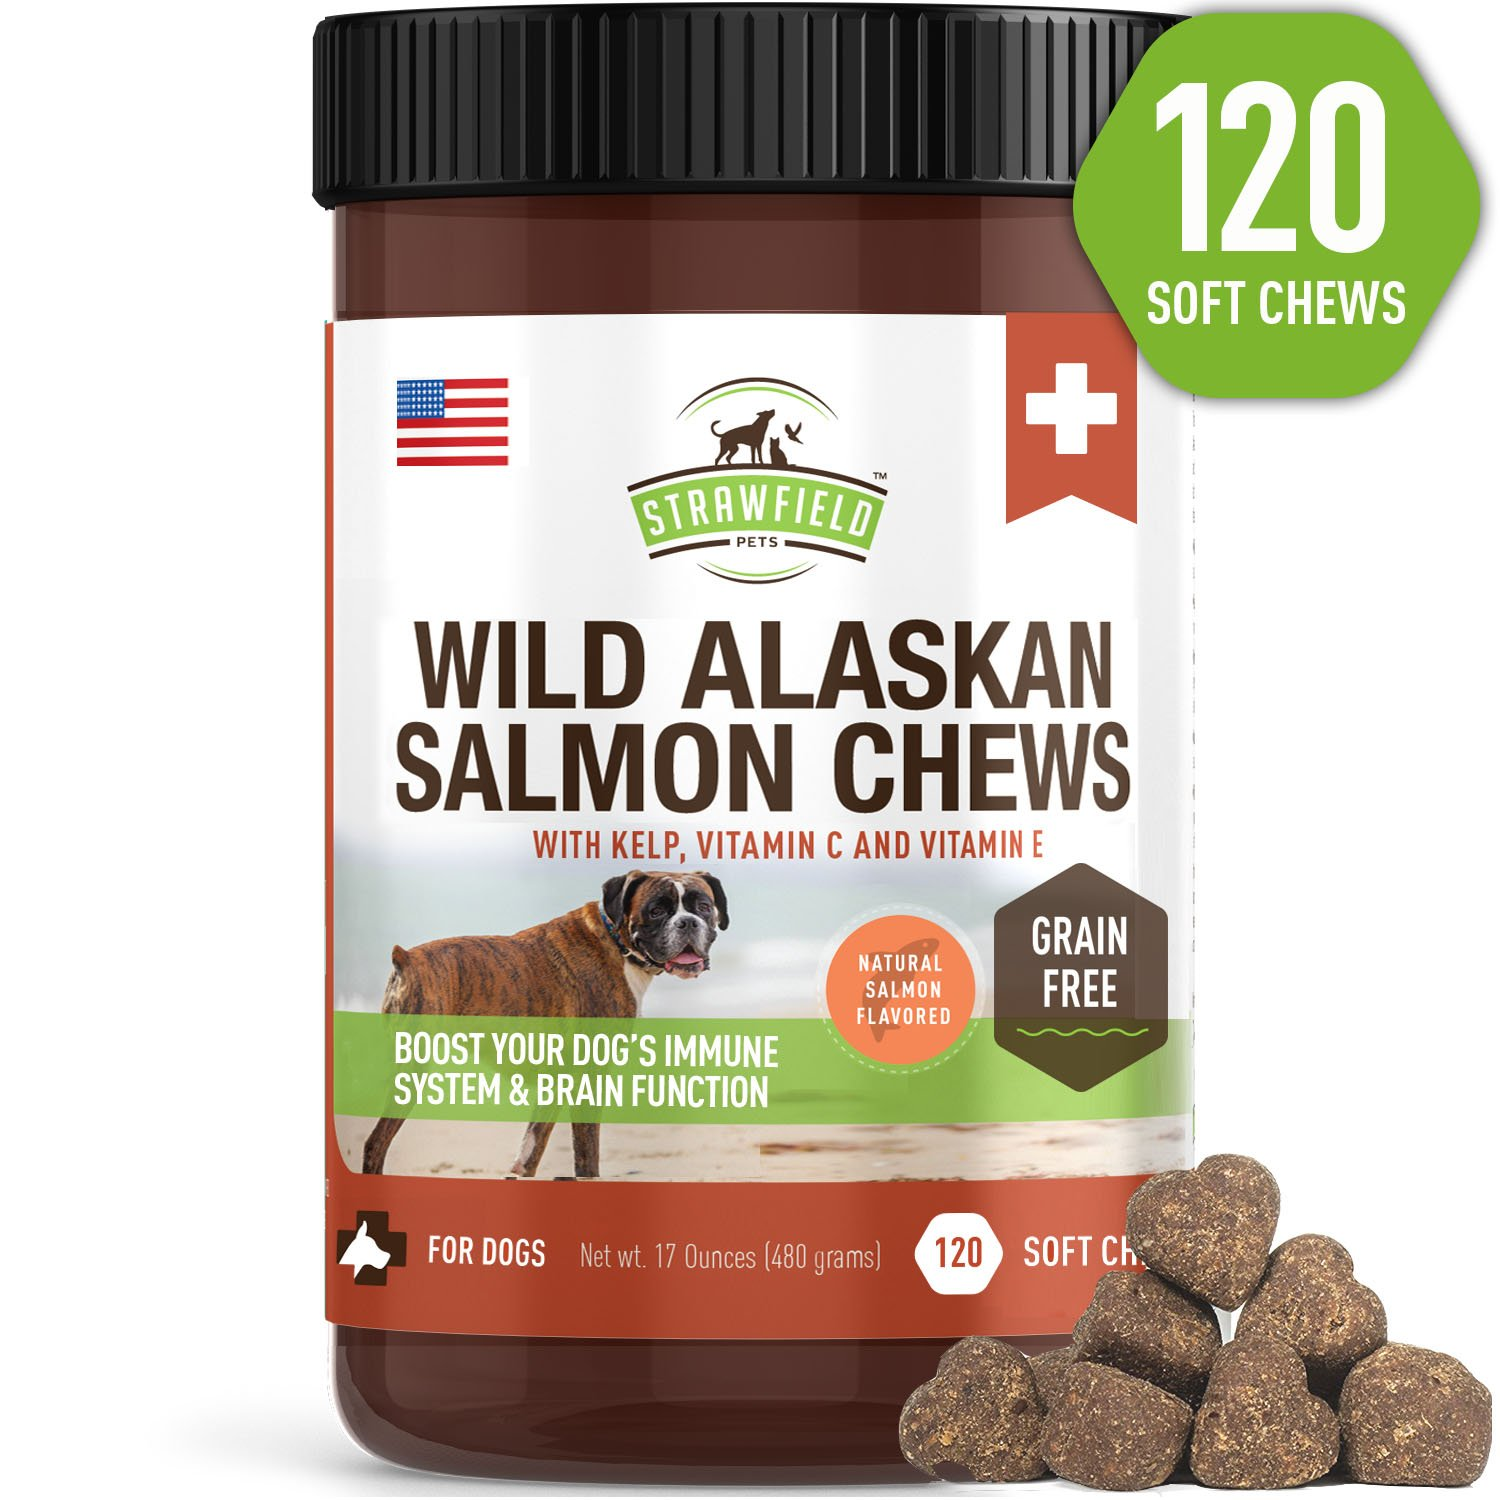 Salmon Oil for Dogs - Grain Free Dog Treats, 120 Chews - Omega 3 Fish Oil Pet Supplement for Joint Support, Shedding, Healthy Coat, Itching Skin Allergy Relief, Arthritis Pain, Anti Inflammatory, USA by Strawfield Pets